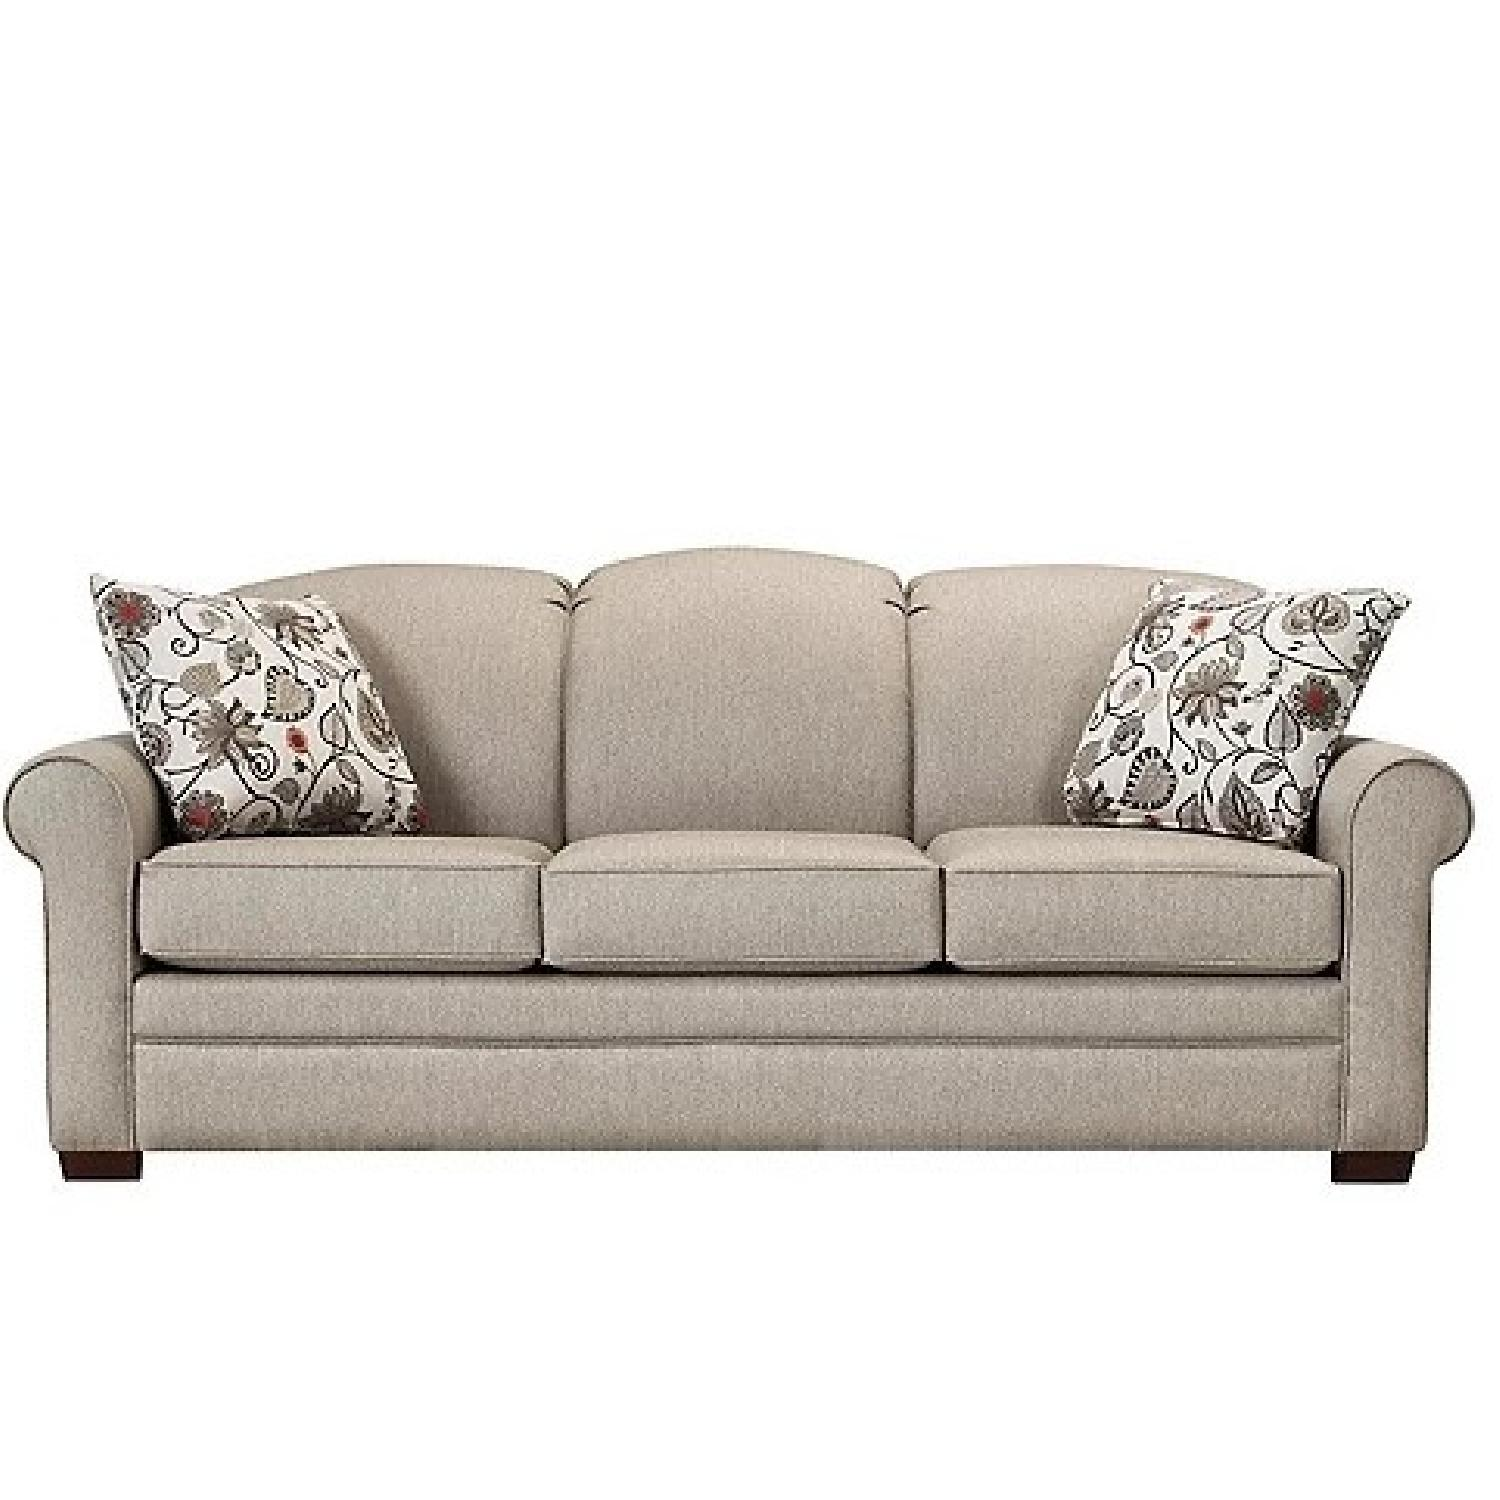 Raymour & Flanigan Green Couch with Reversible Pillows - image-4